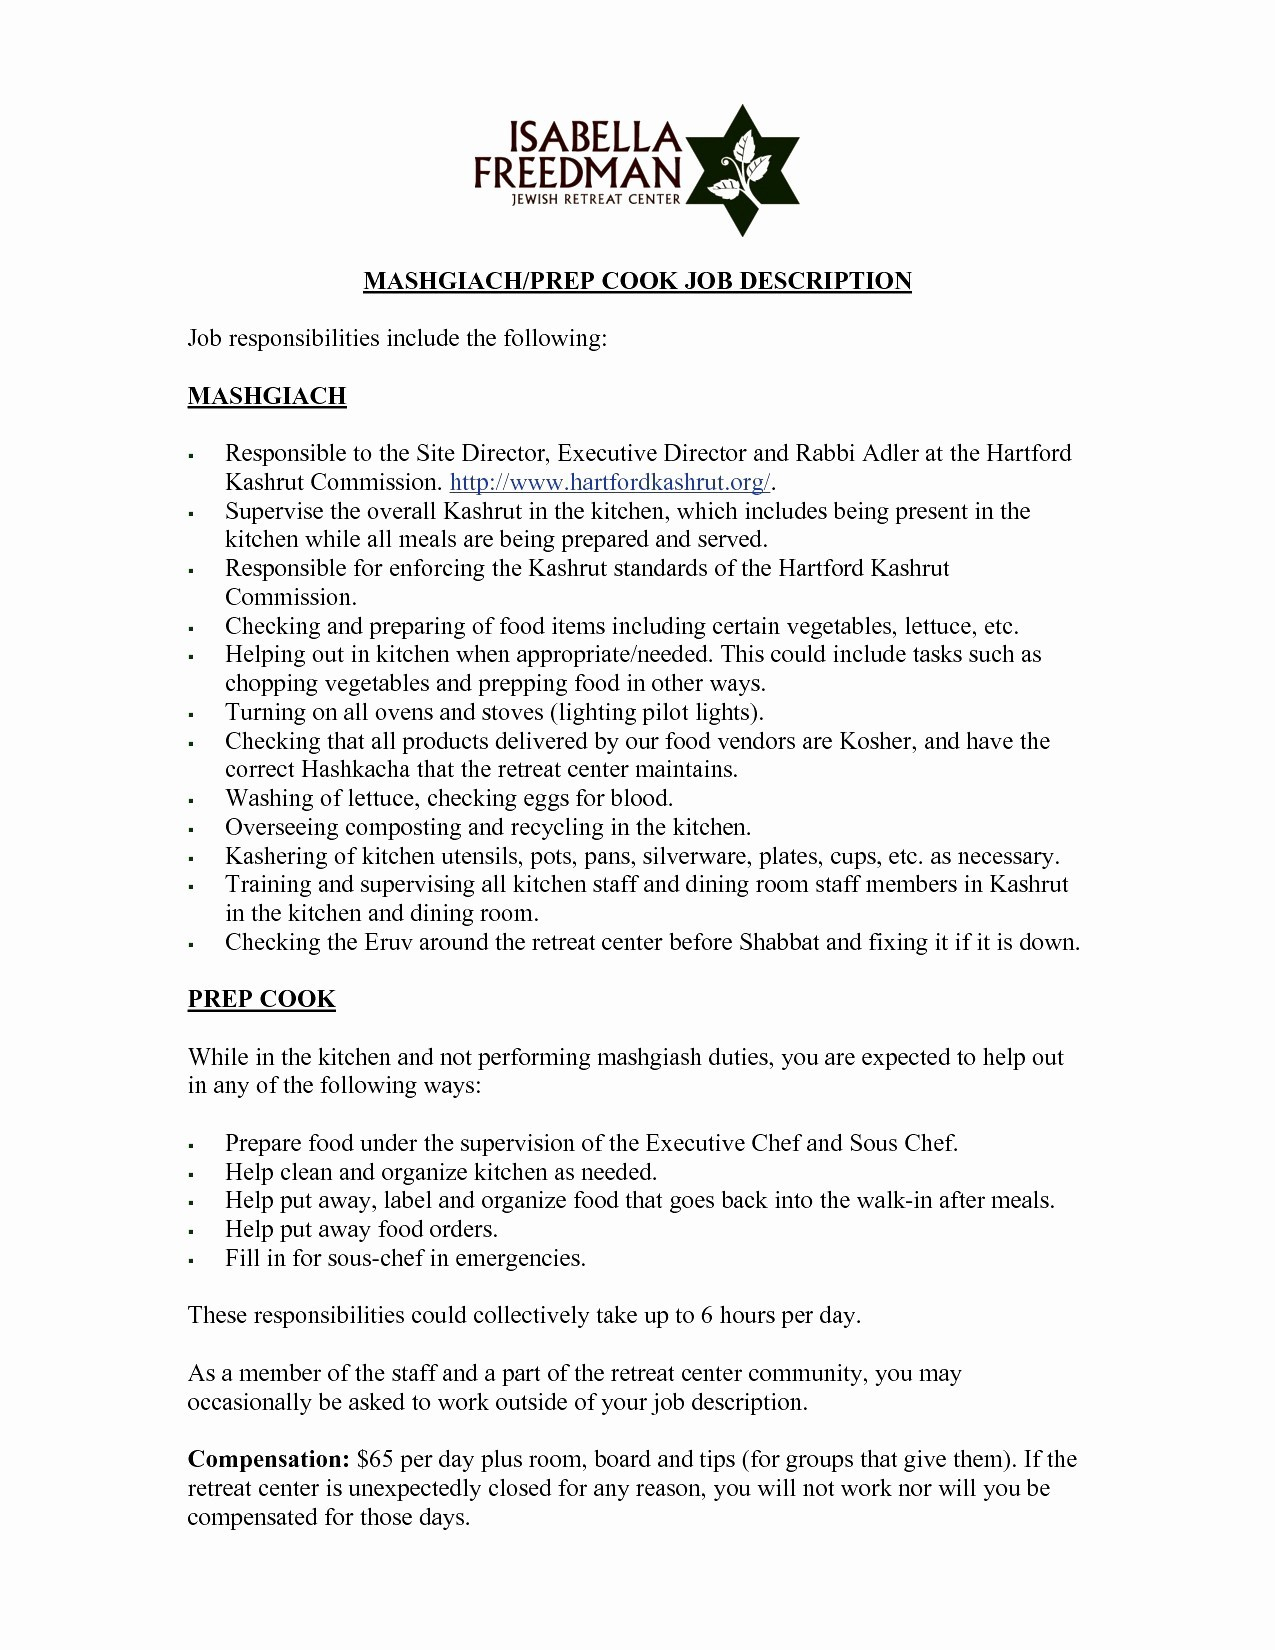 Google Docs Letter Template - Free Resume Templates Google Docs New Luxury Cover Letter Template